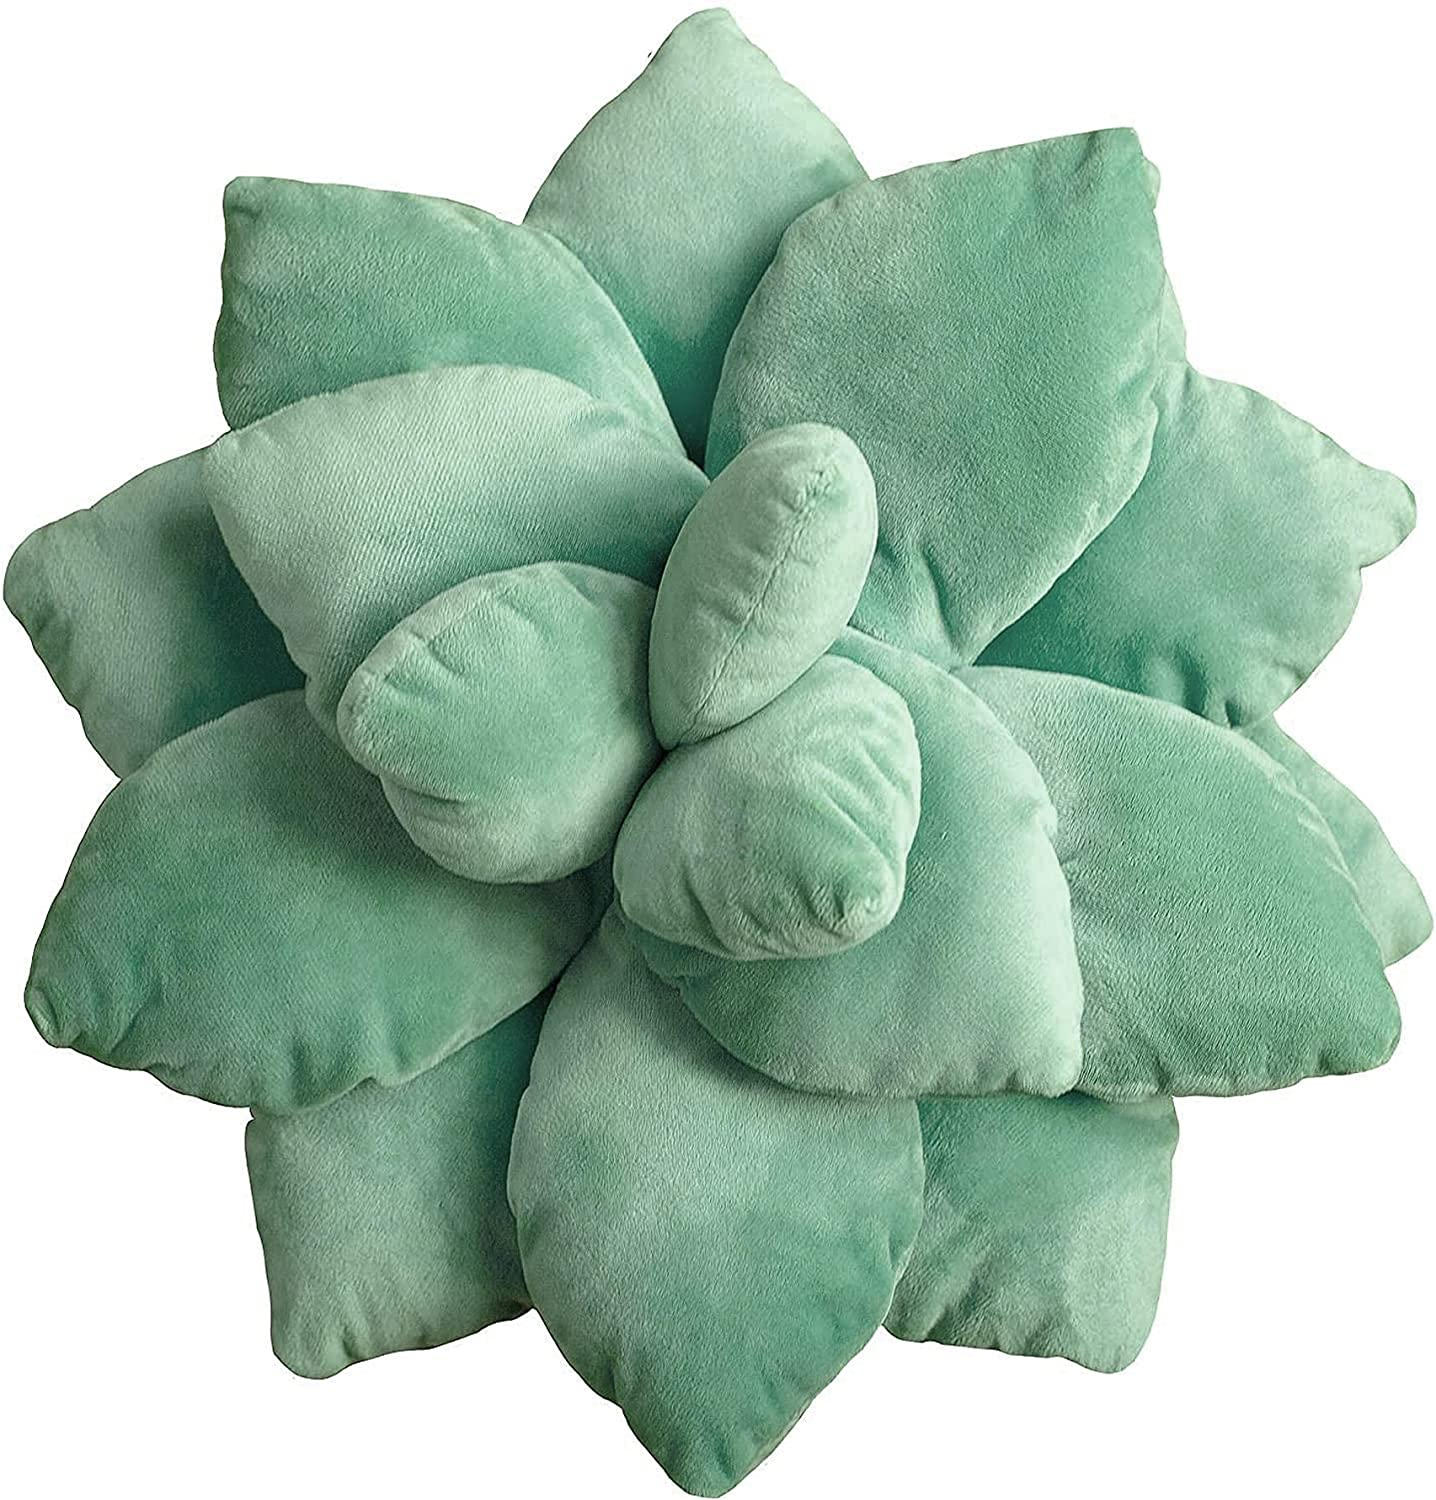 3D Succulents Cactus Pillow, Cute Succulents, for Garden or Green Lovers Baby Green Plant Throw Pillows for Bedroom Room Home Decoration Novelty Plush Cushion (GreenA, 18)